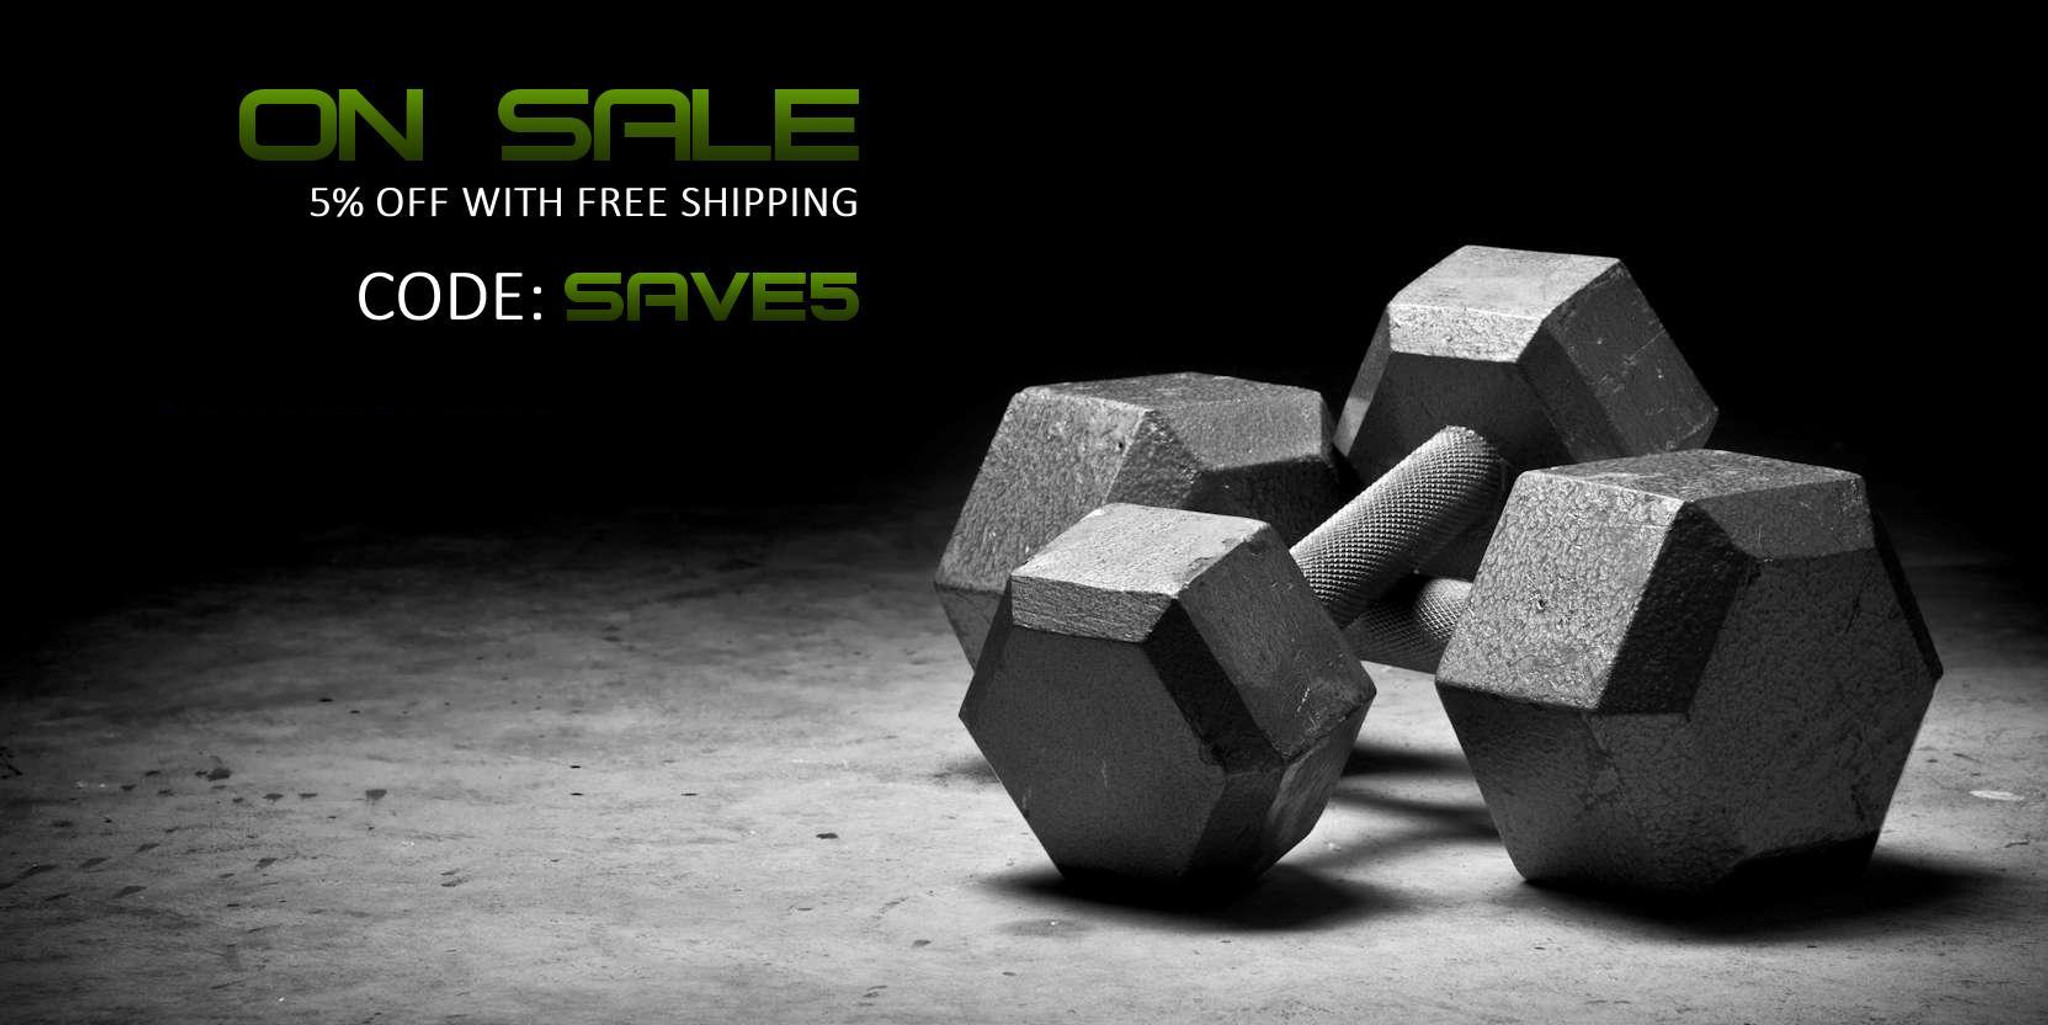 Gtech Fitness - Home Gym & Commercial Equipment - On Sale